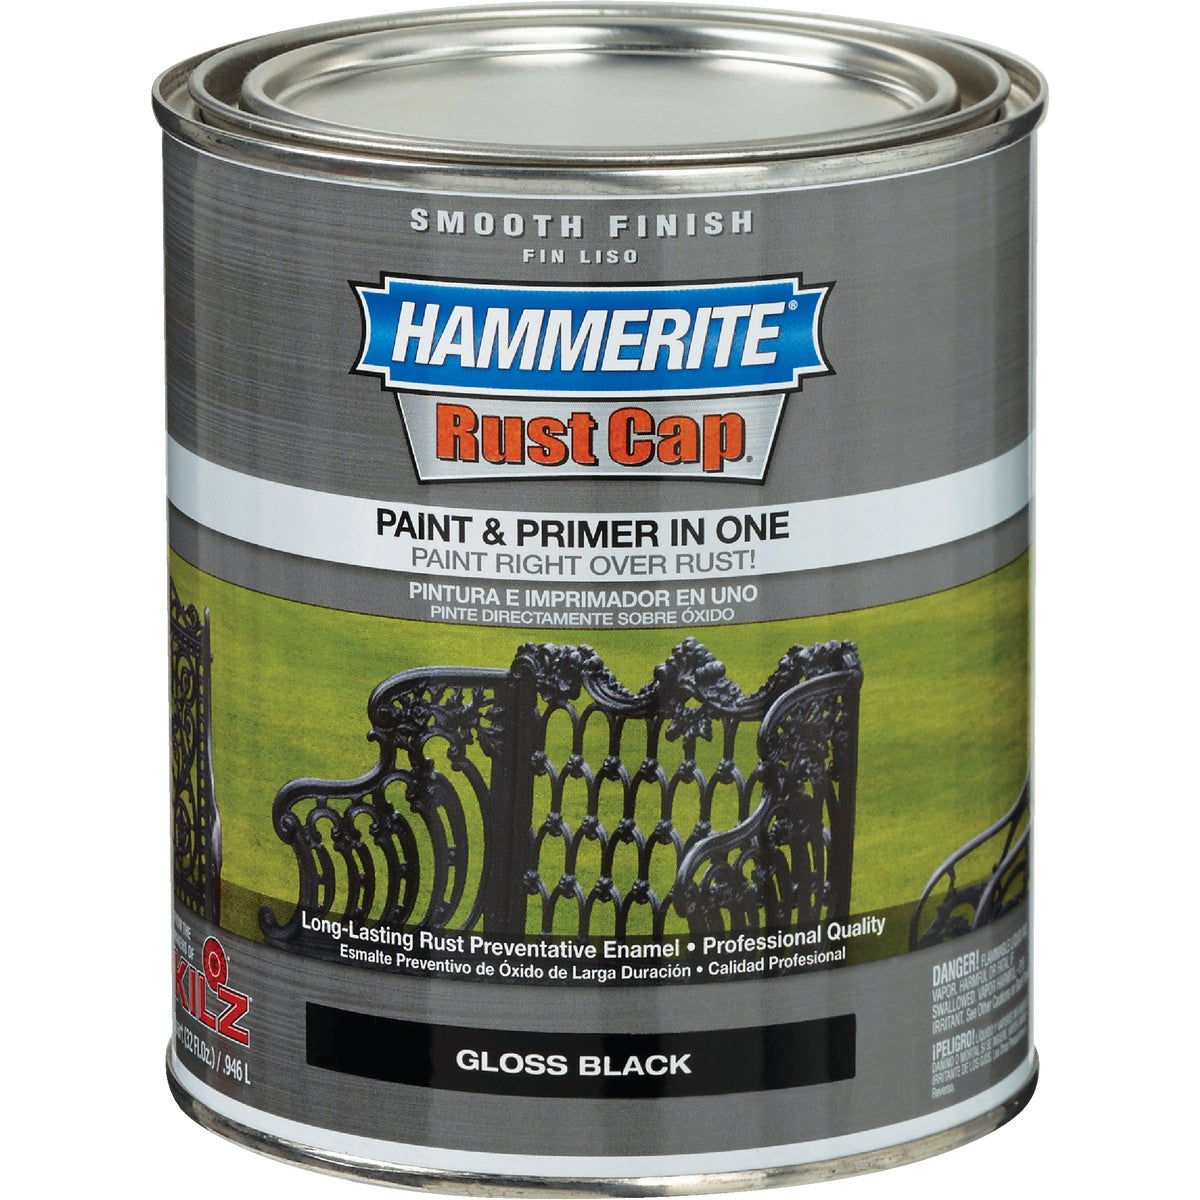 GLOSS BLACK SMOOTH PAINT - 44240 by Masterchem